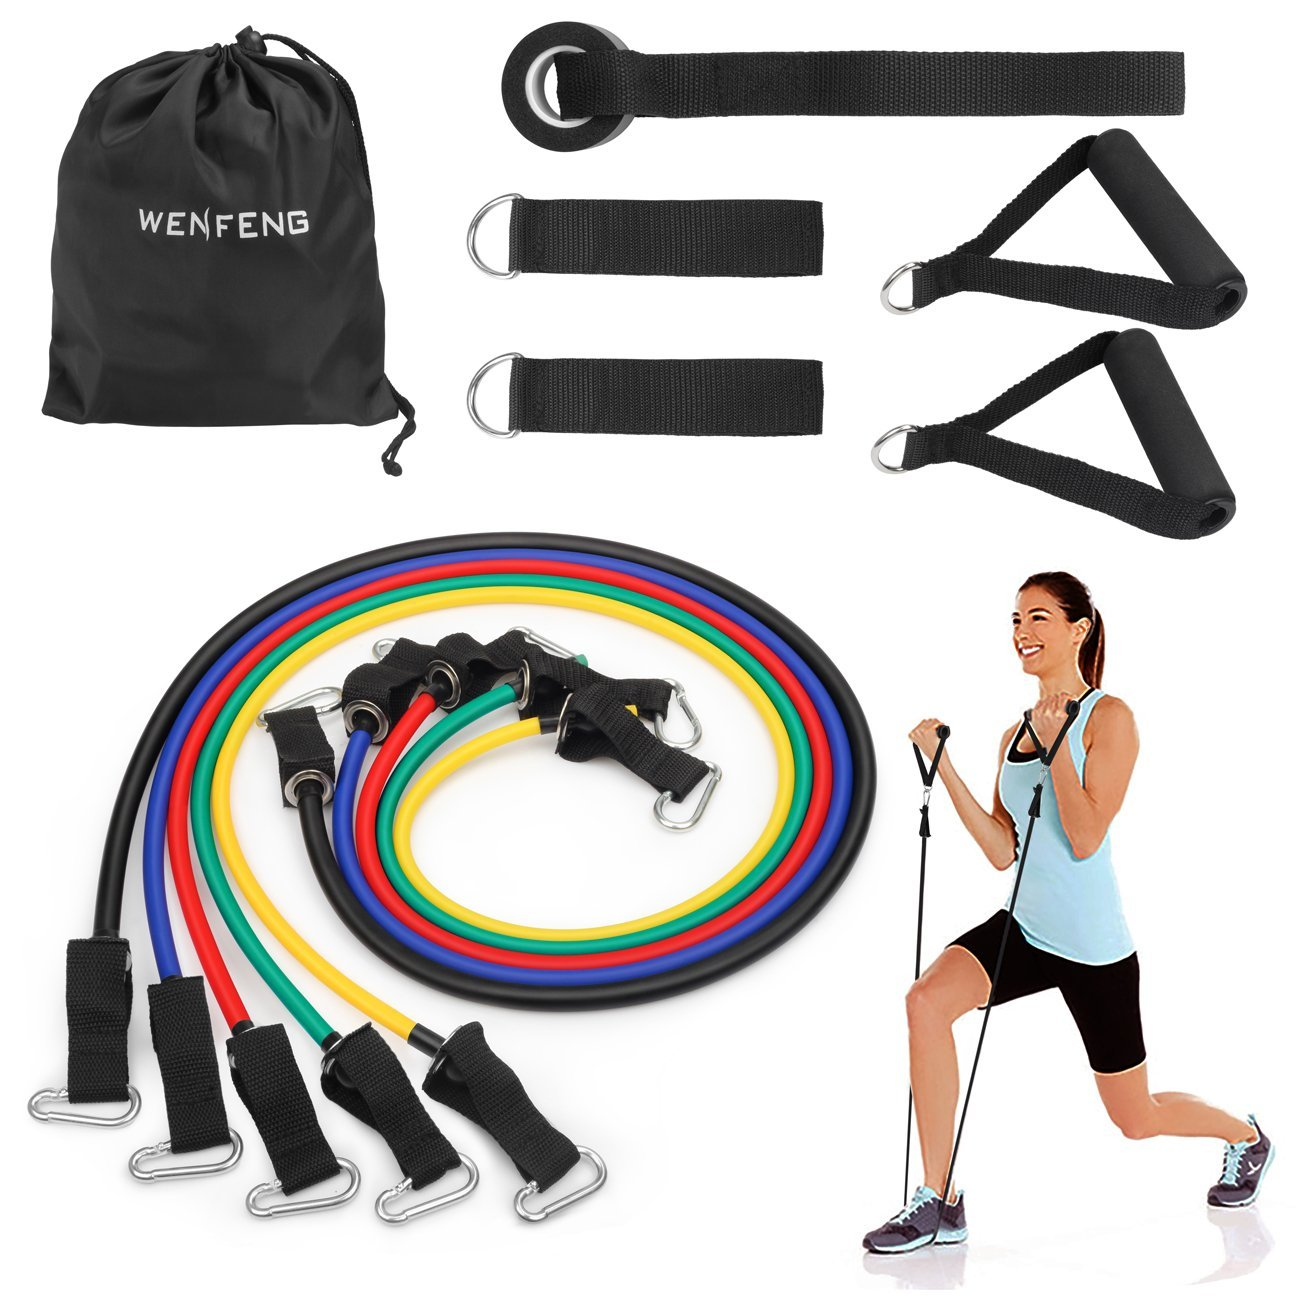 Wenfeng resistance band handles